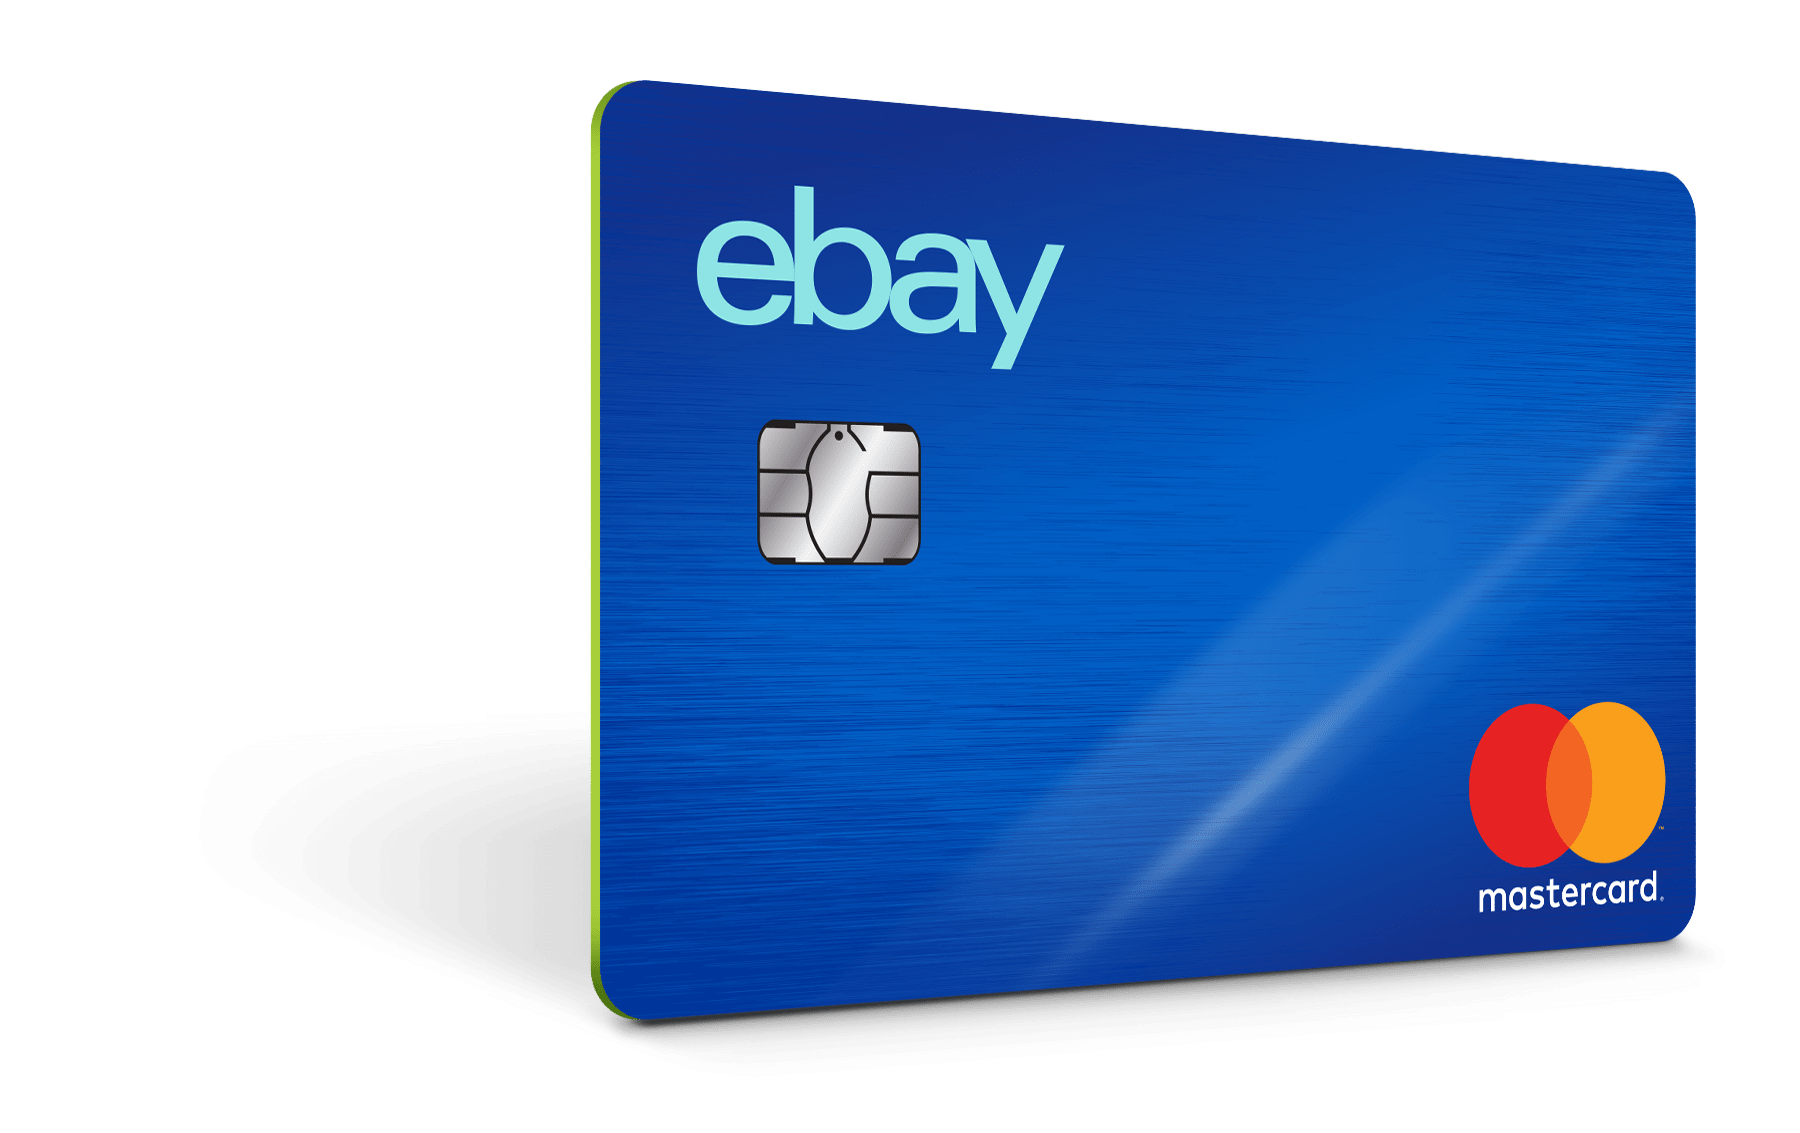 Ebay Mastercard Earn 50 Statement Credit When You Spend 200 Within 30 Days Slickdeals Net